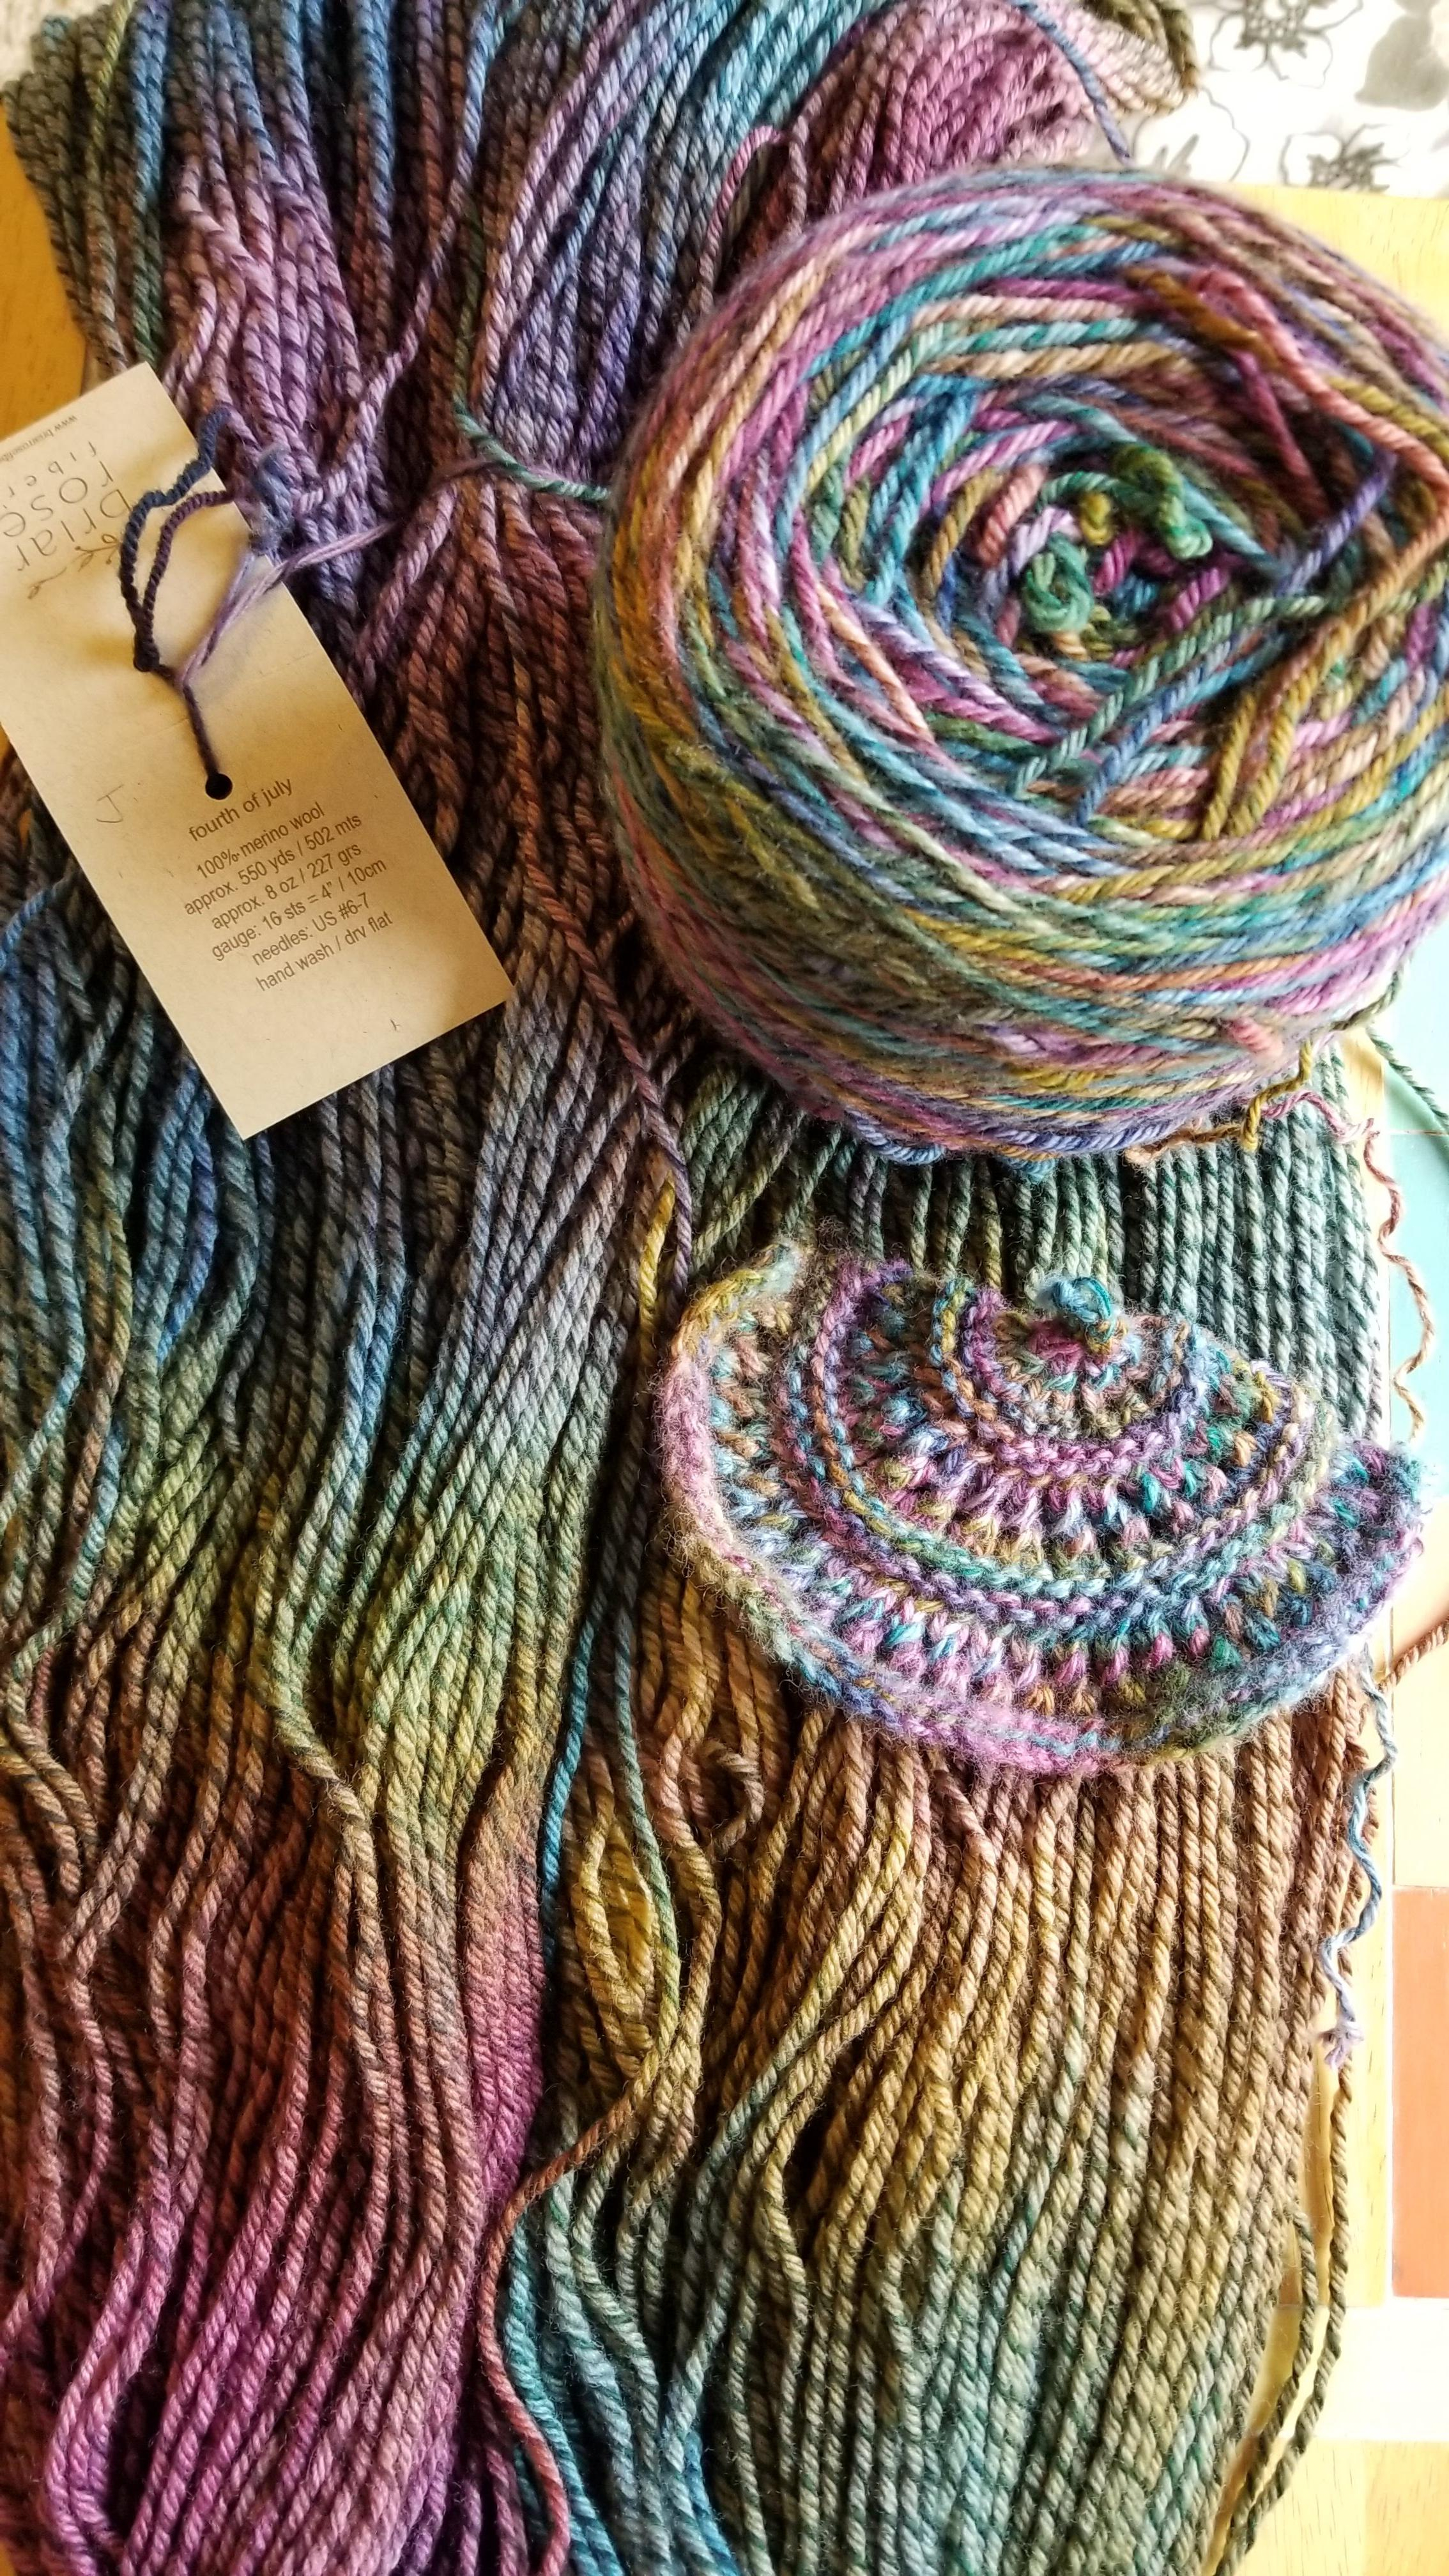 Variegated Yarn Patterns Knitting What Looks Good In A Busy Variegated Yarn Need Pattern Ideas